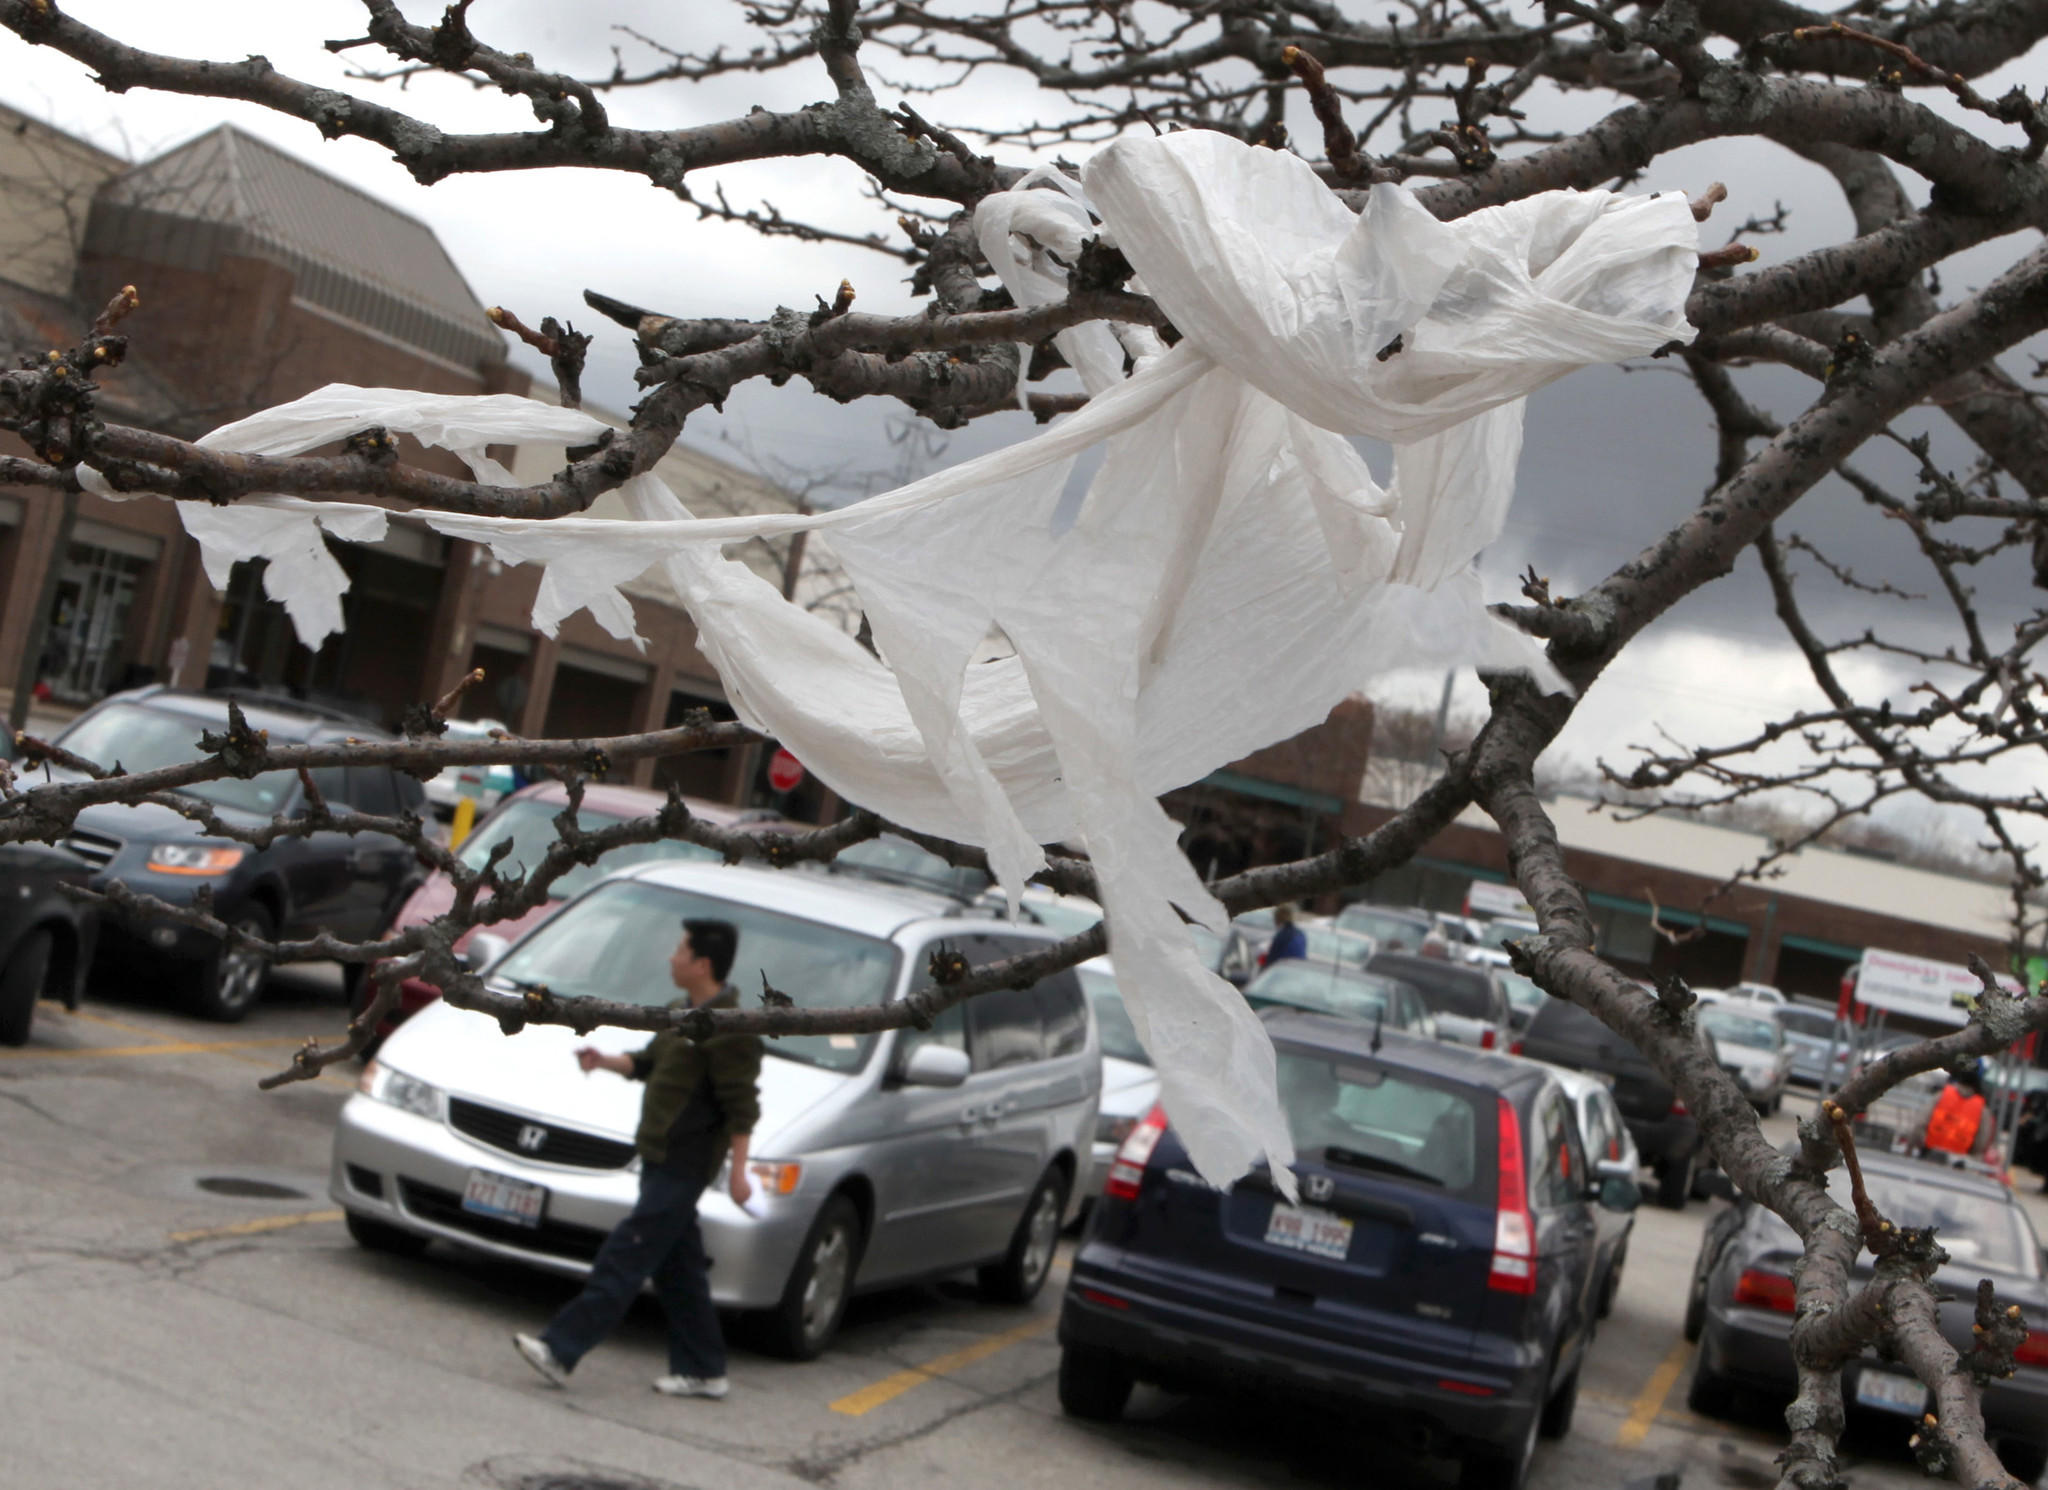 A plastic bag dangles off a tree branch at a Dominick's lot in Evanston.